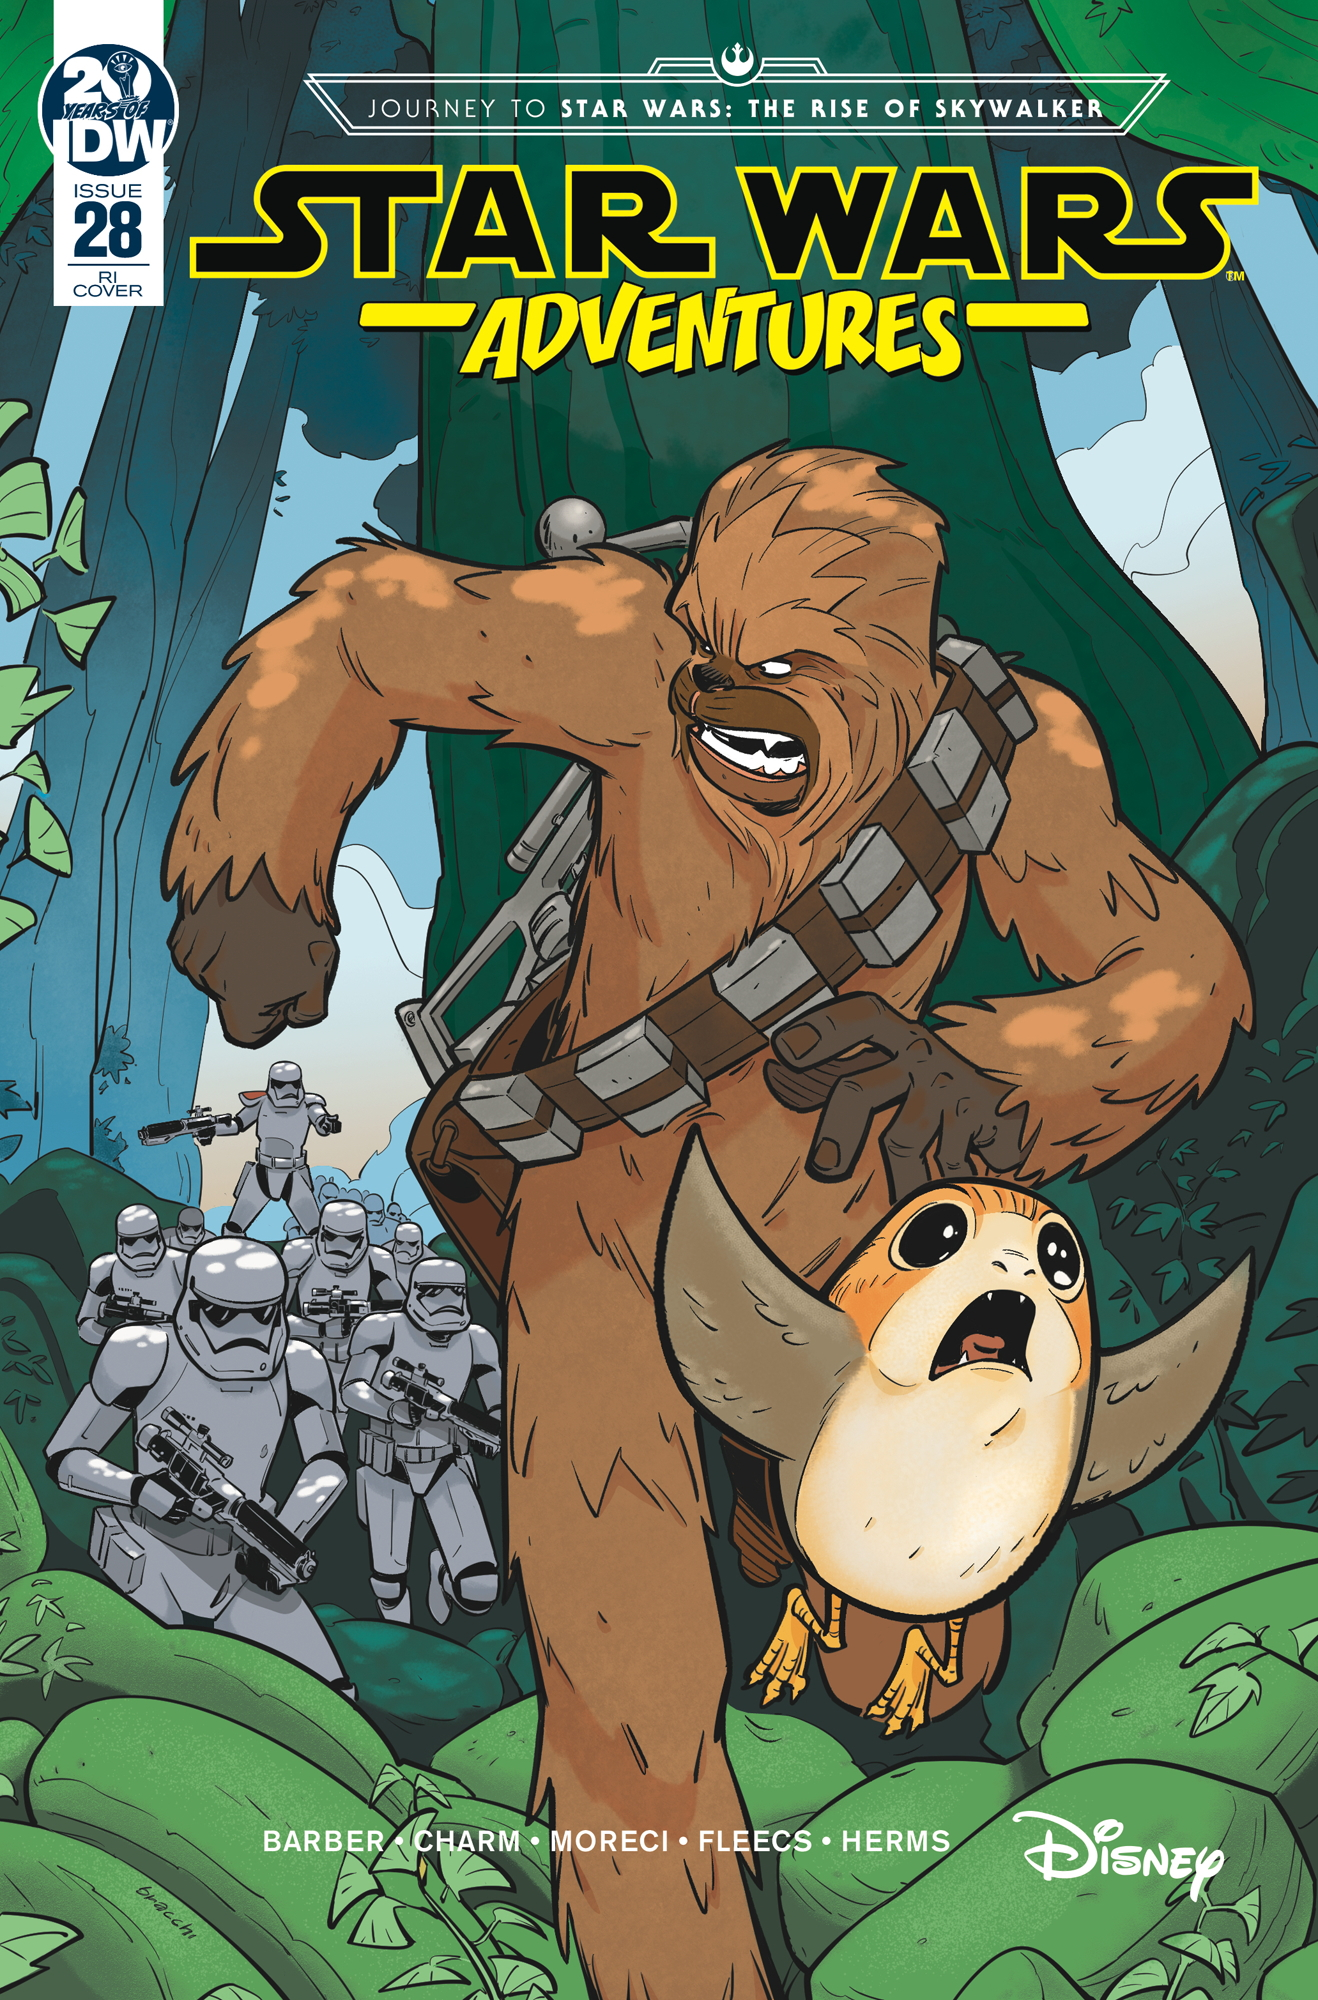 Star Wars Adventures #28 (Manuel Bracchi Variant Cover) (27.11.2019)